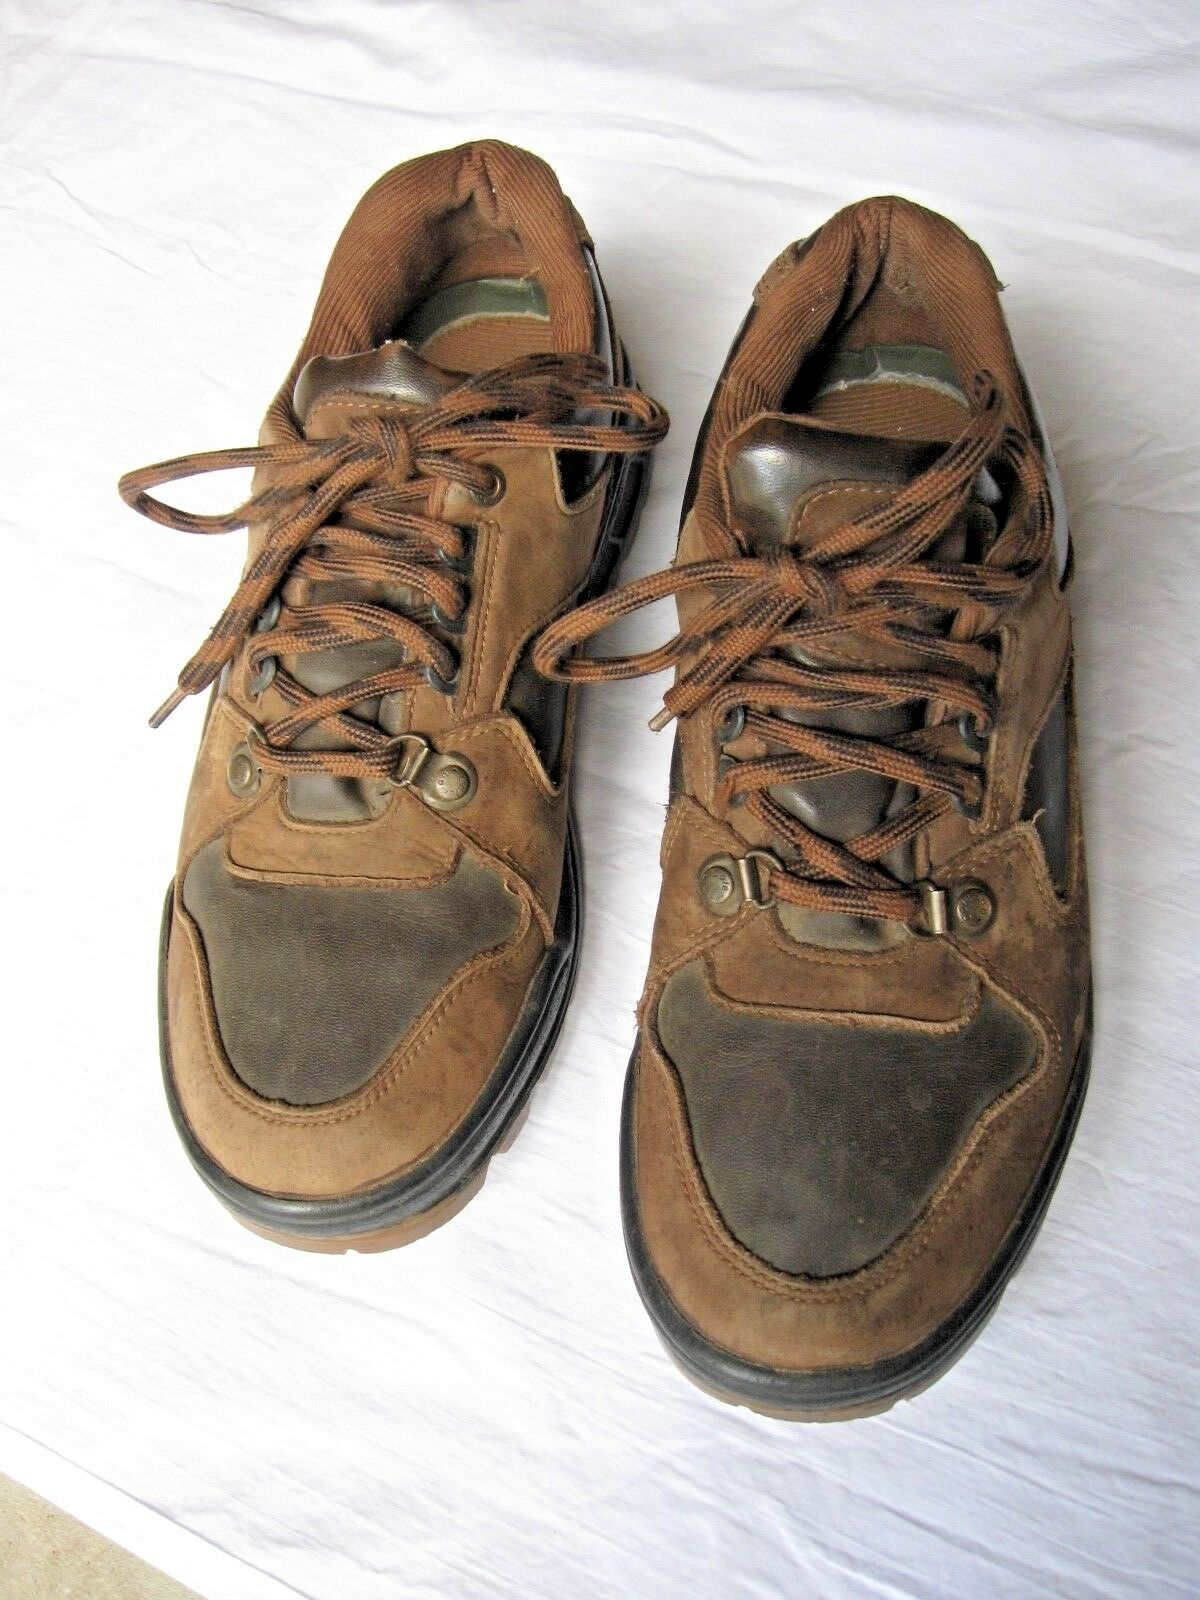 Pair Men's Shoes Dry -  Coleman Walk Dry Shoes - Size 9 a22ecc